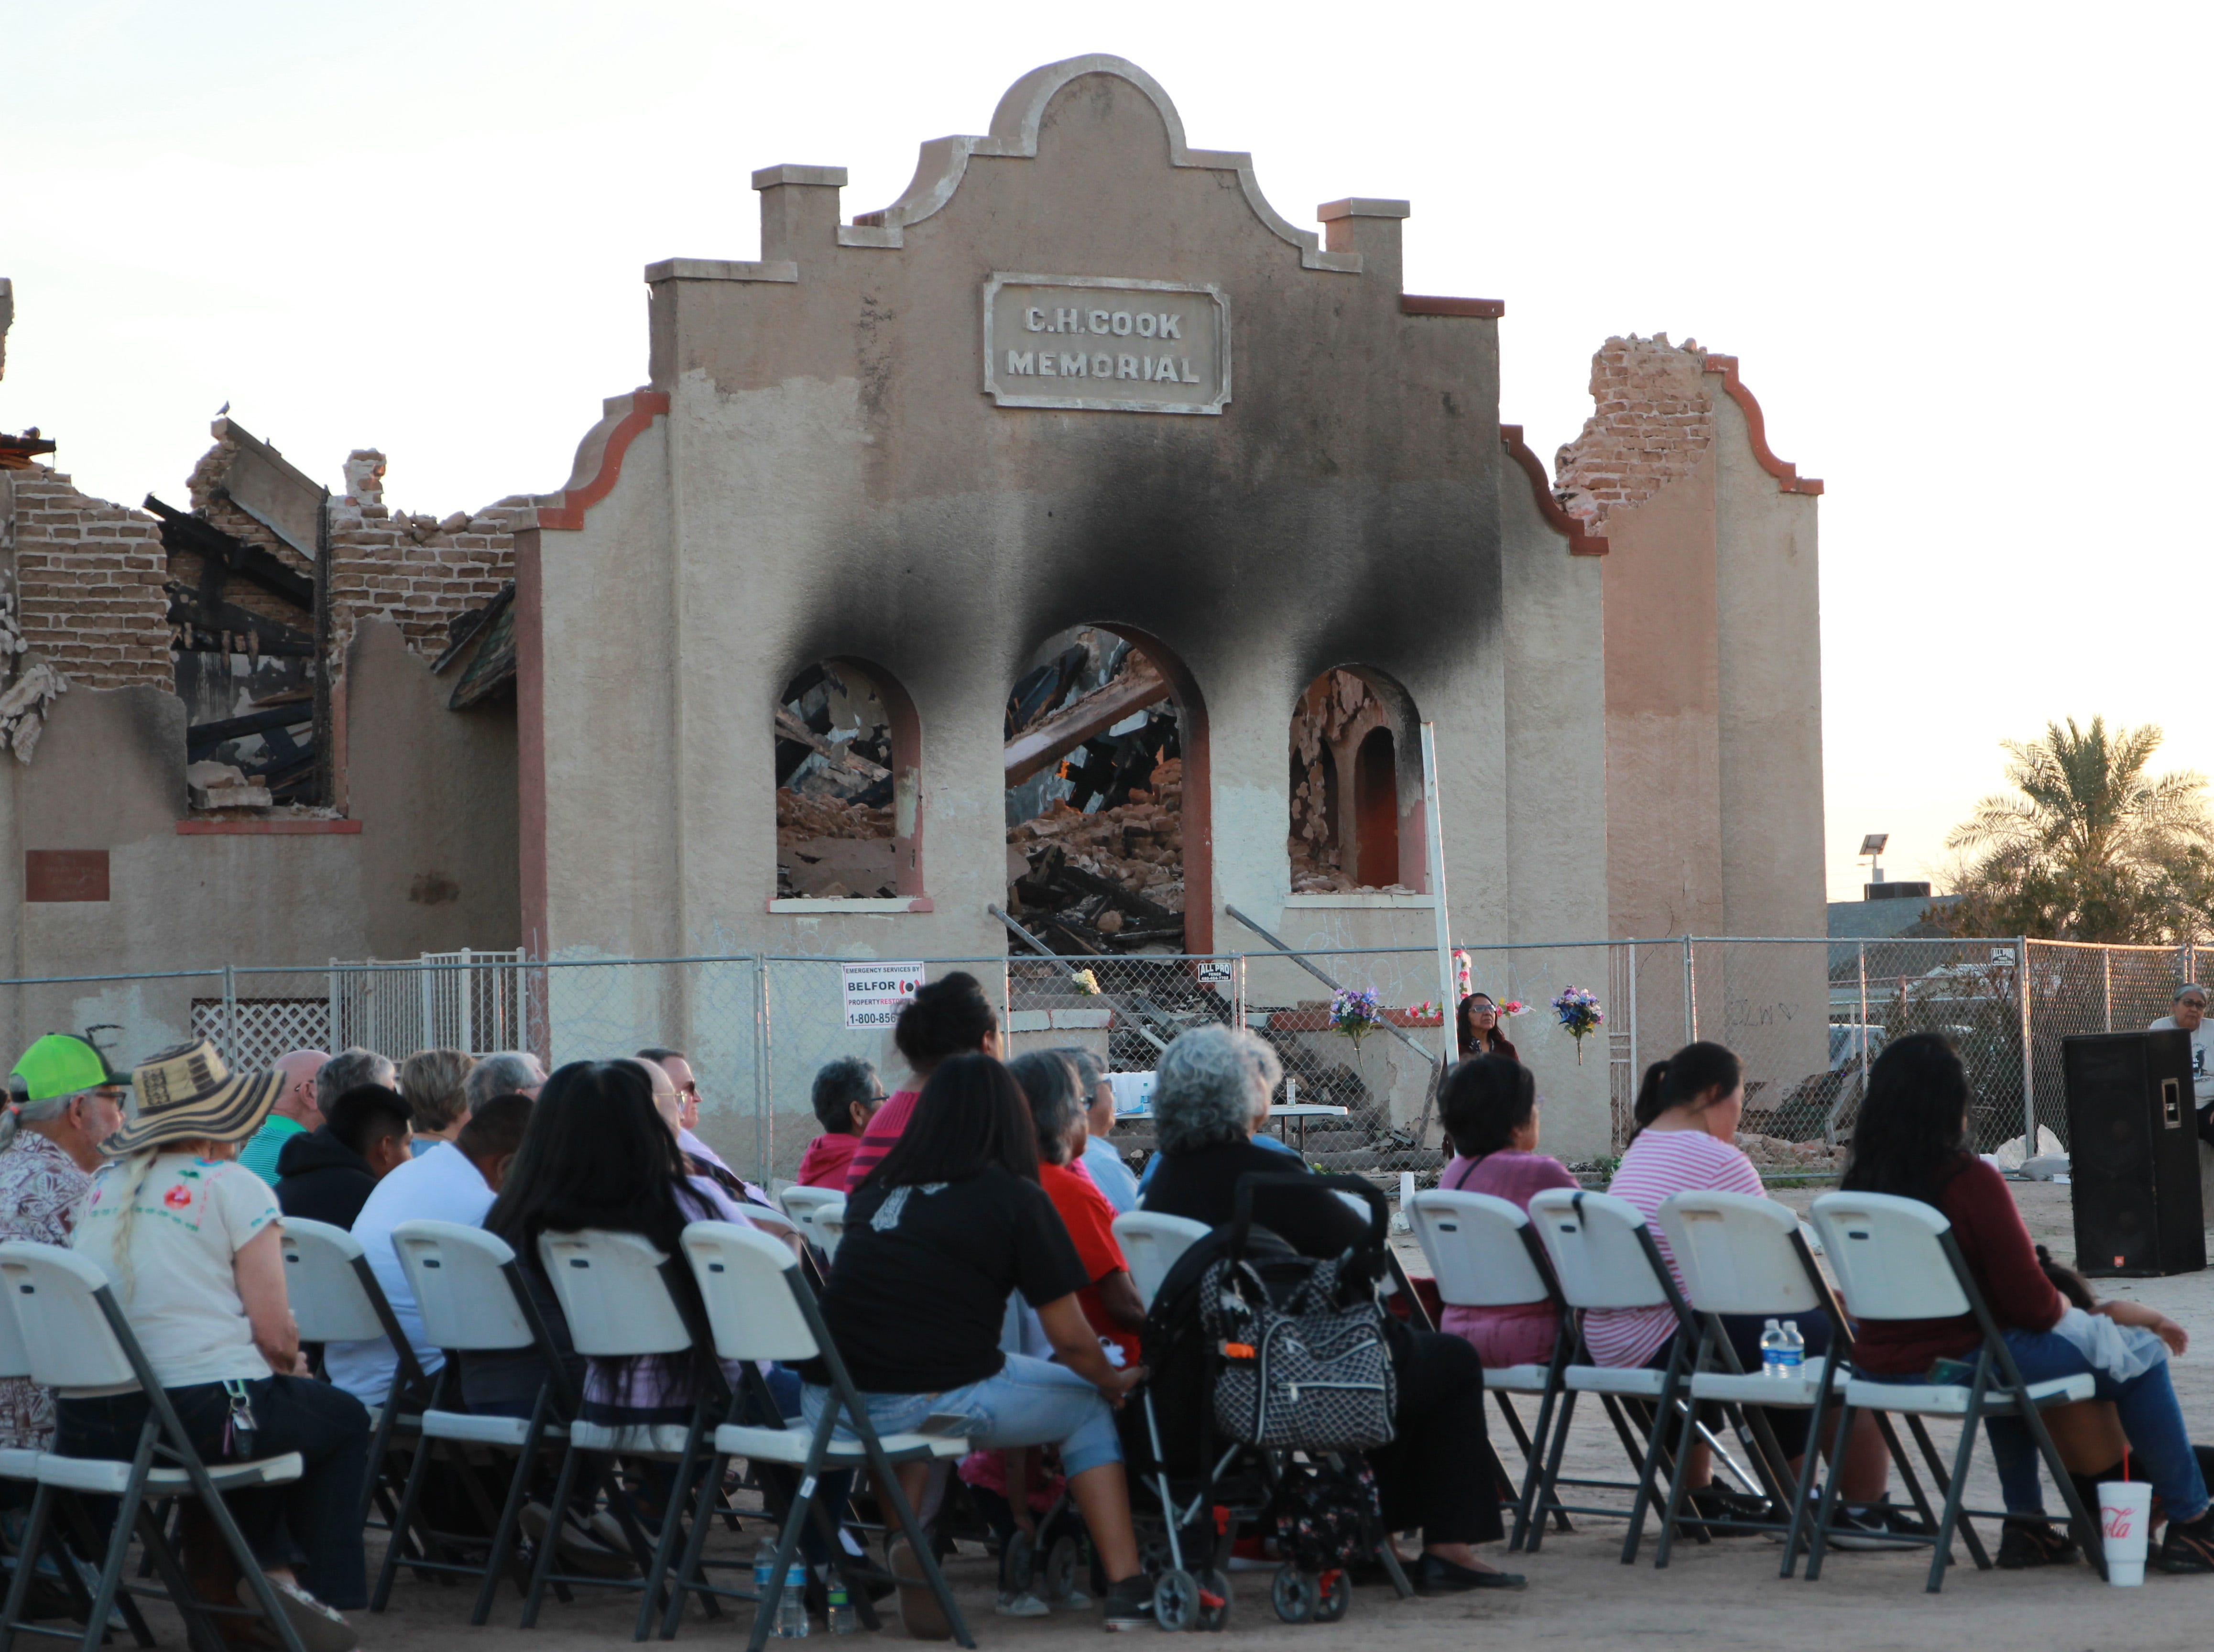 Members of the community sit in front of the church as they listen to stories and memories of the church.